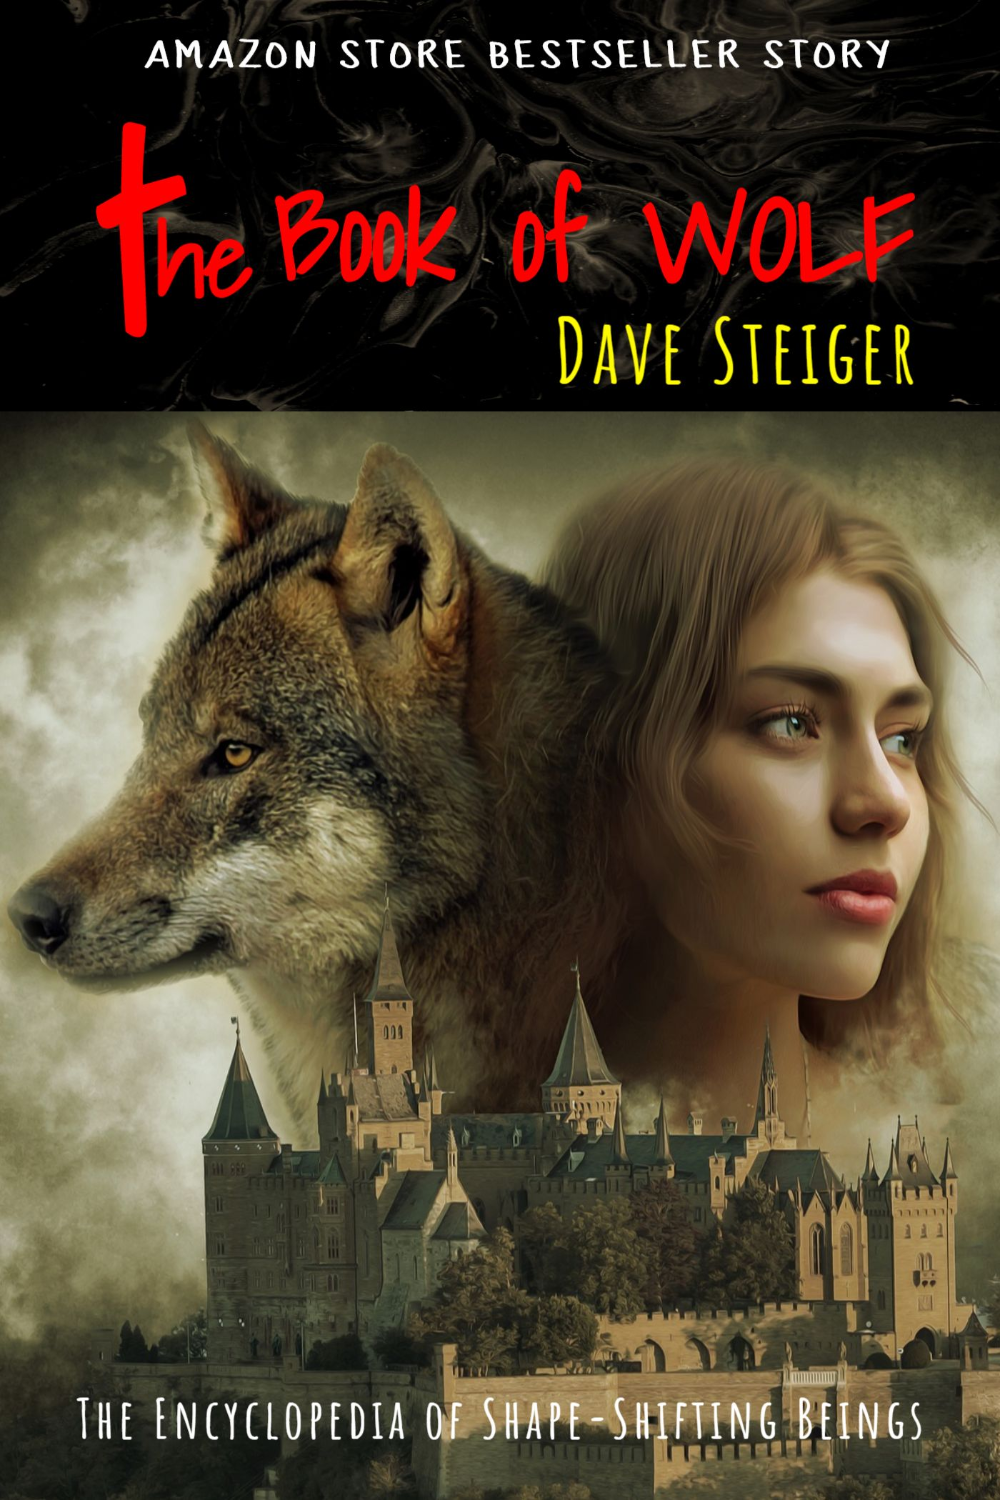 Use This Wolf And Moon Themed Cover Template For Creating Your Own Book Related With Mystical Beings The Cover Book Cover Maker Book Cover Template Moon Book